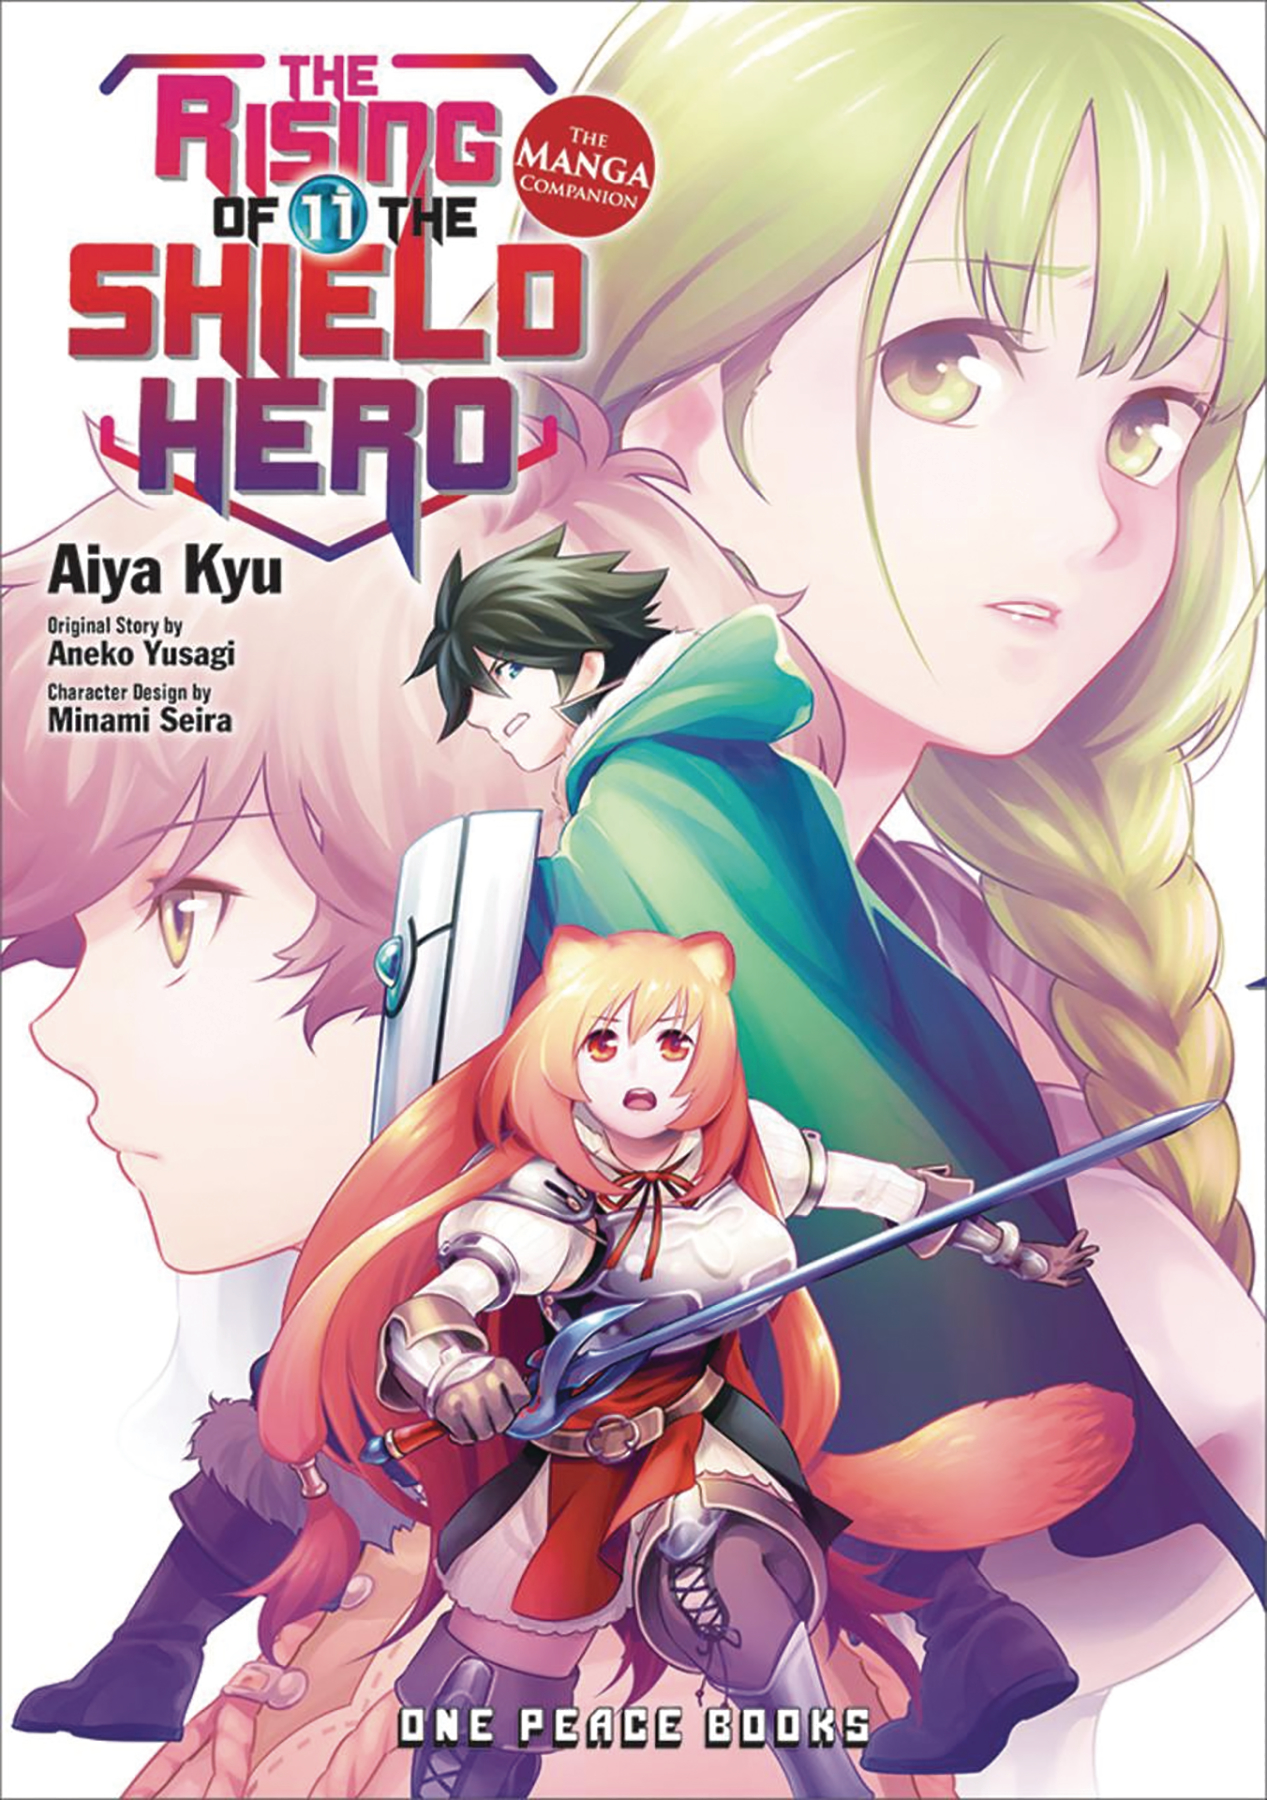 RISING OF THE SHIELD HERO GN VOL 11 MANGA